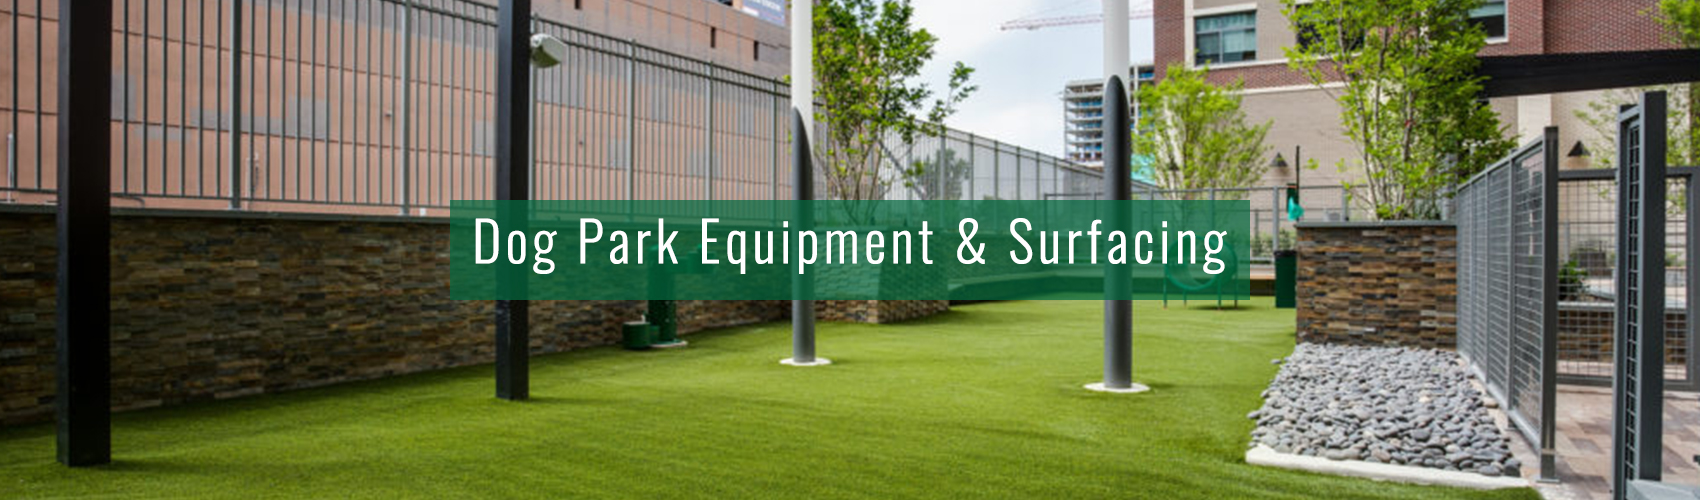 Dog Park Equipment and Surfacing from Complete Landscaping Service